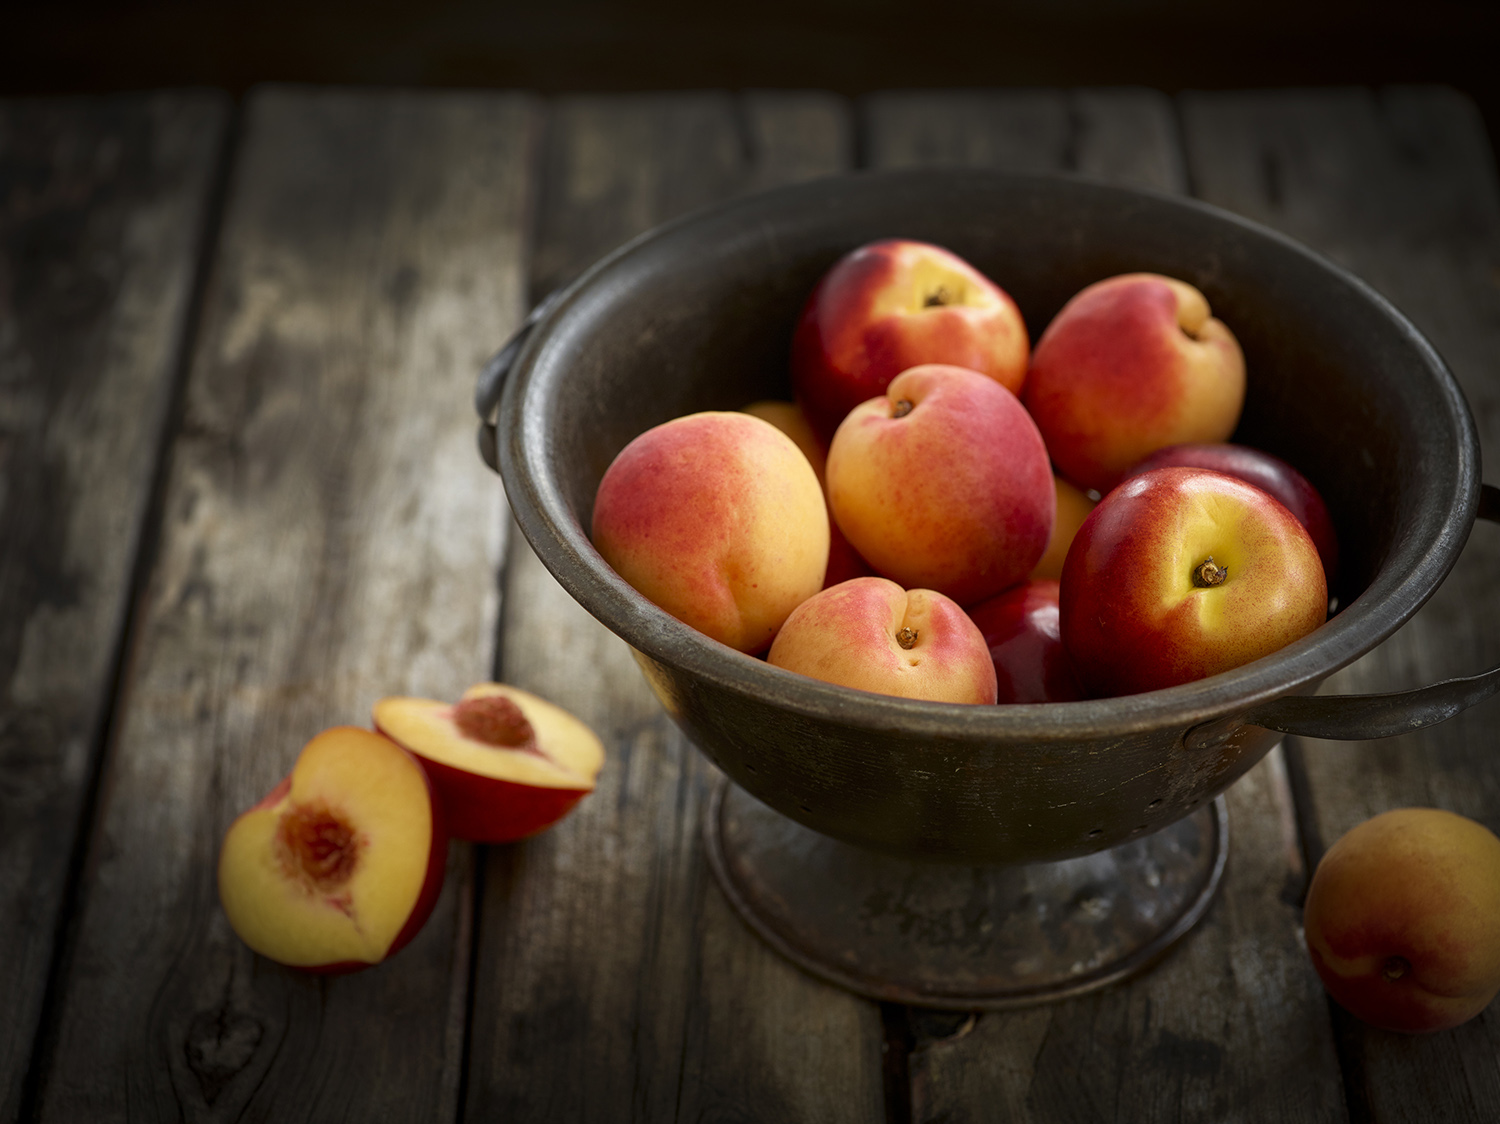 Direct from the field - Stone Fruit